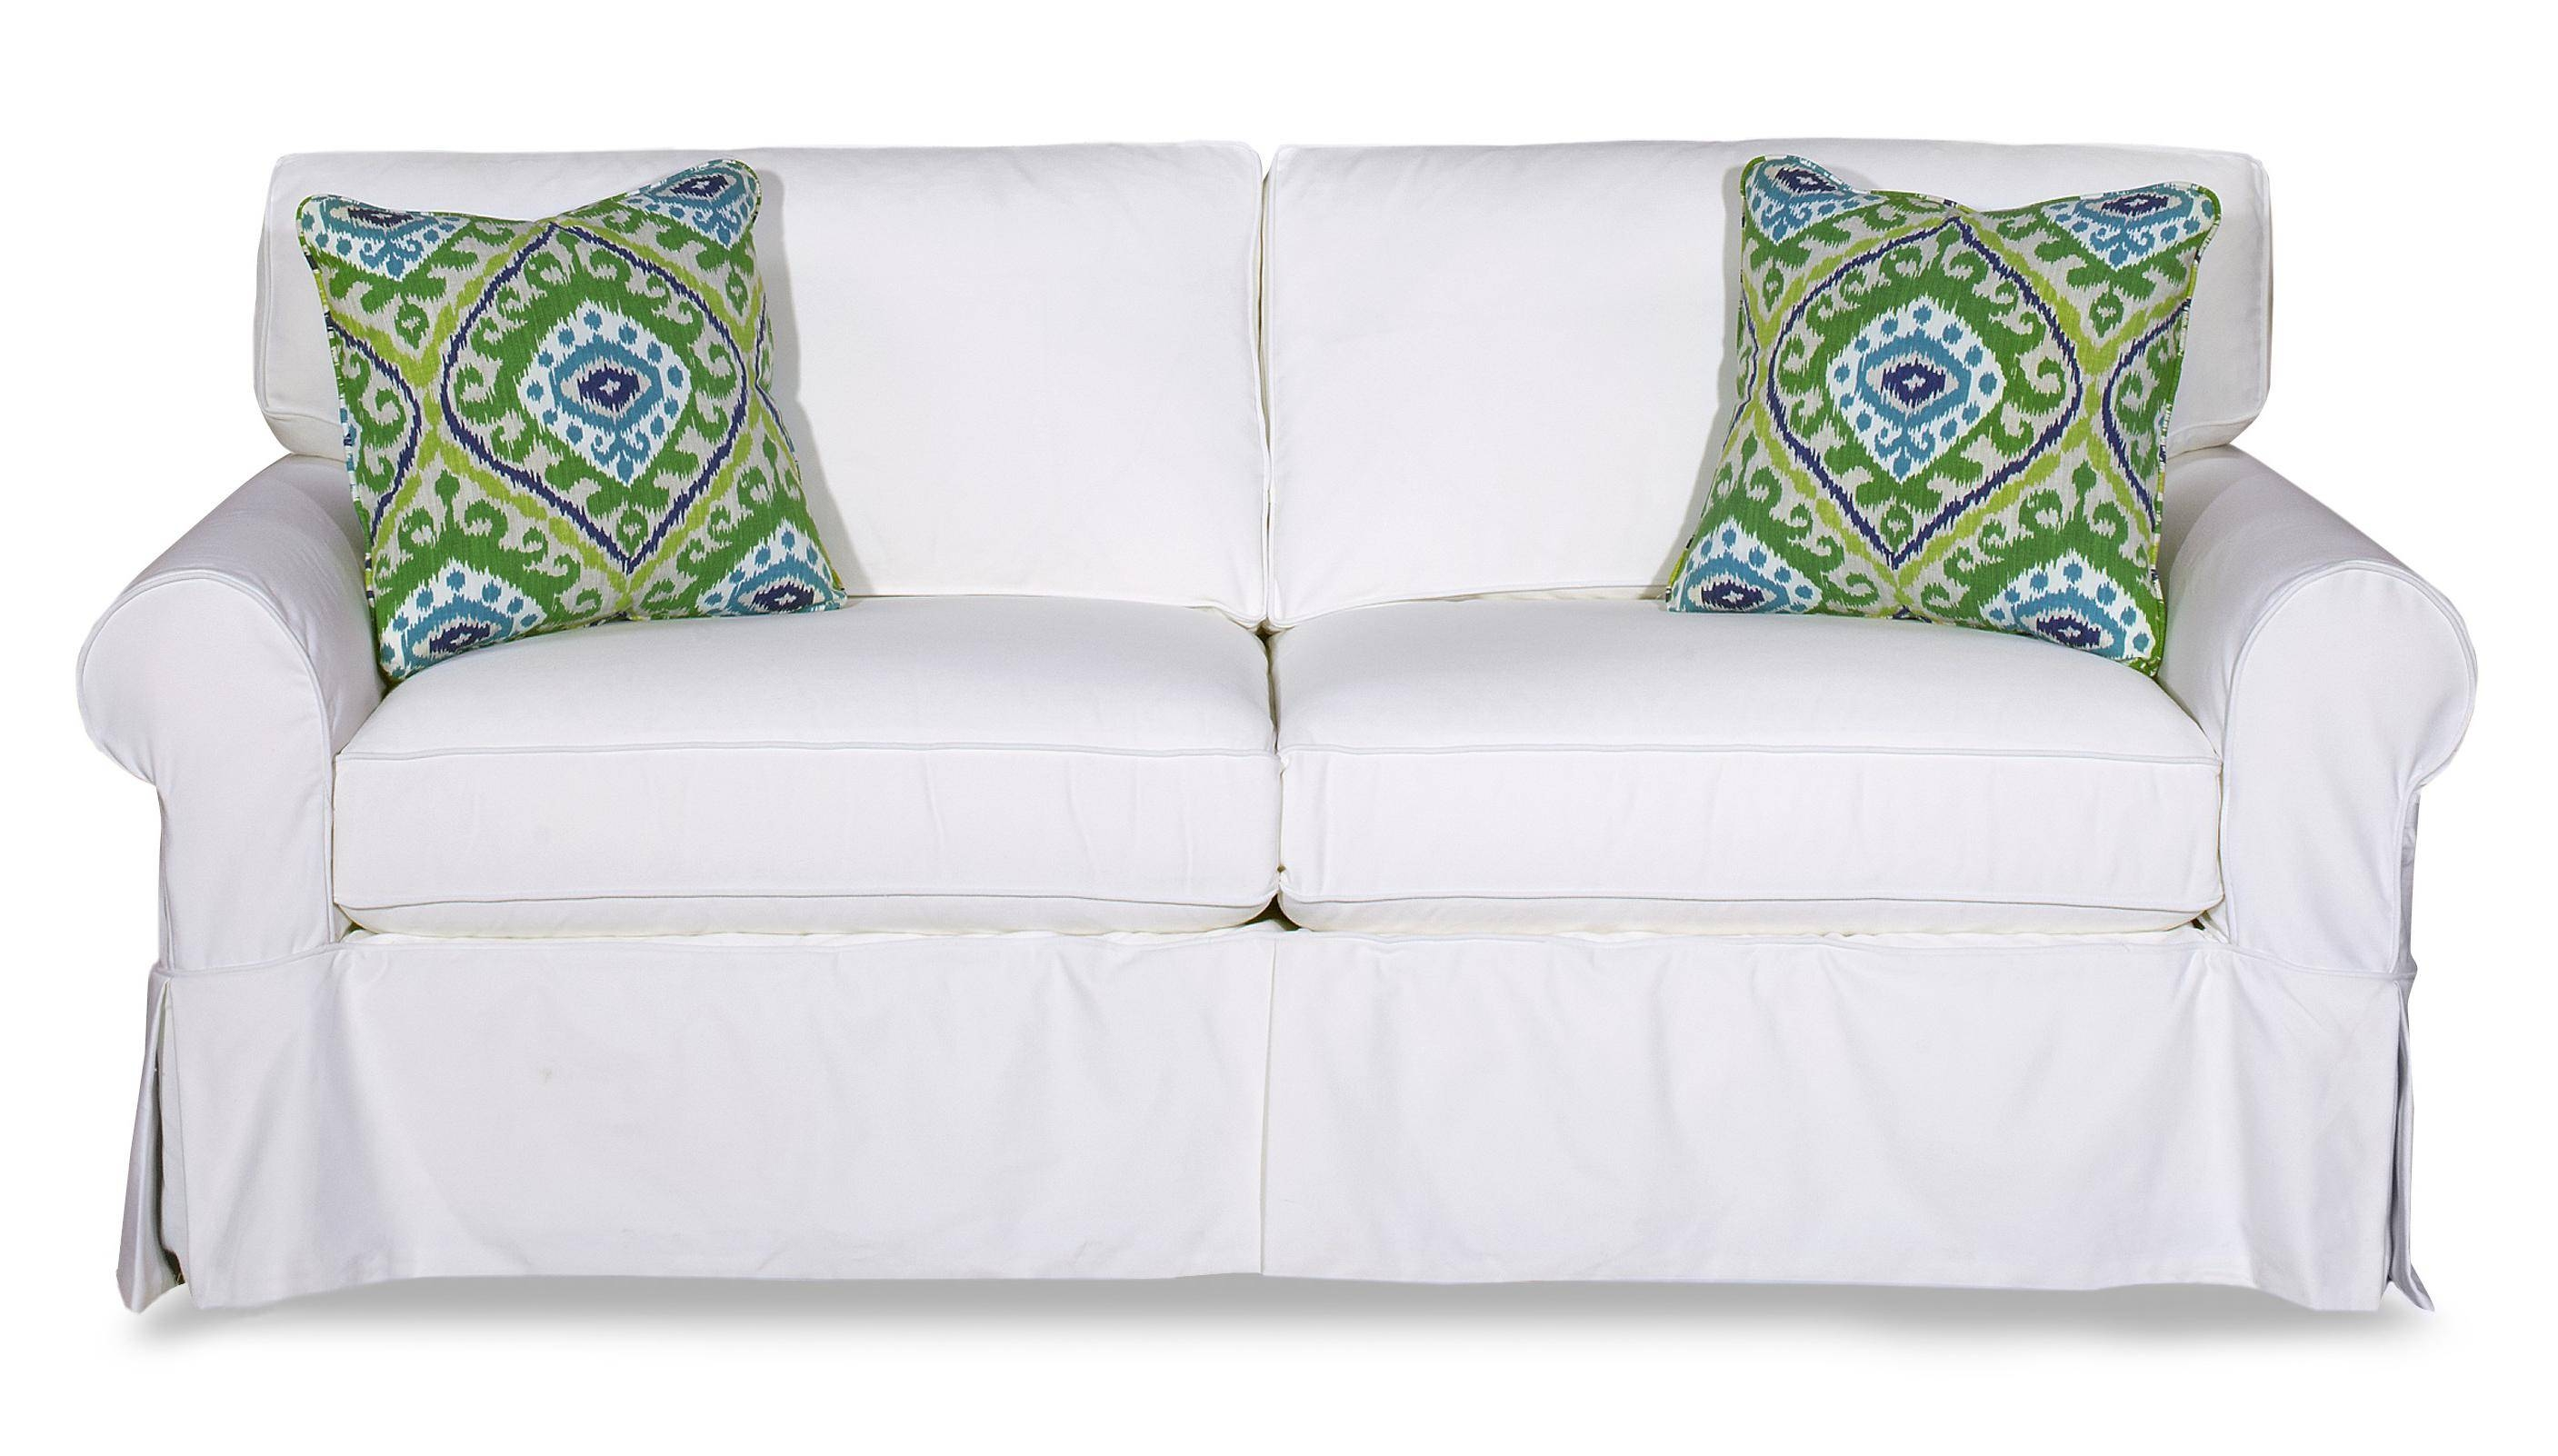 Decor: Charming Pottery Barn Slipcovers For Sofa And Chair with regard to Mitchell Gold Sofa Slipcovers (Image 4 of 26)